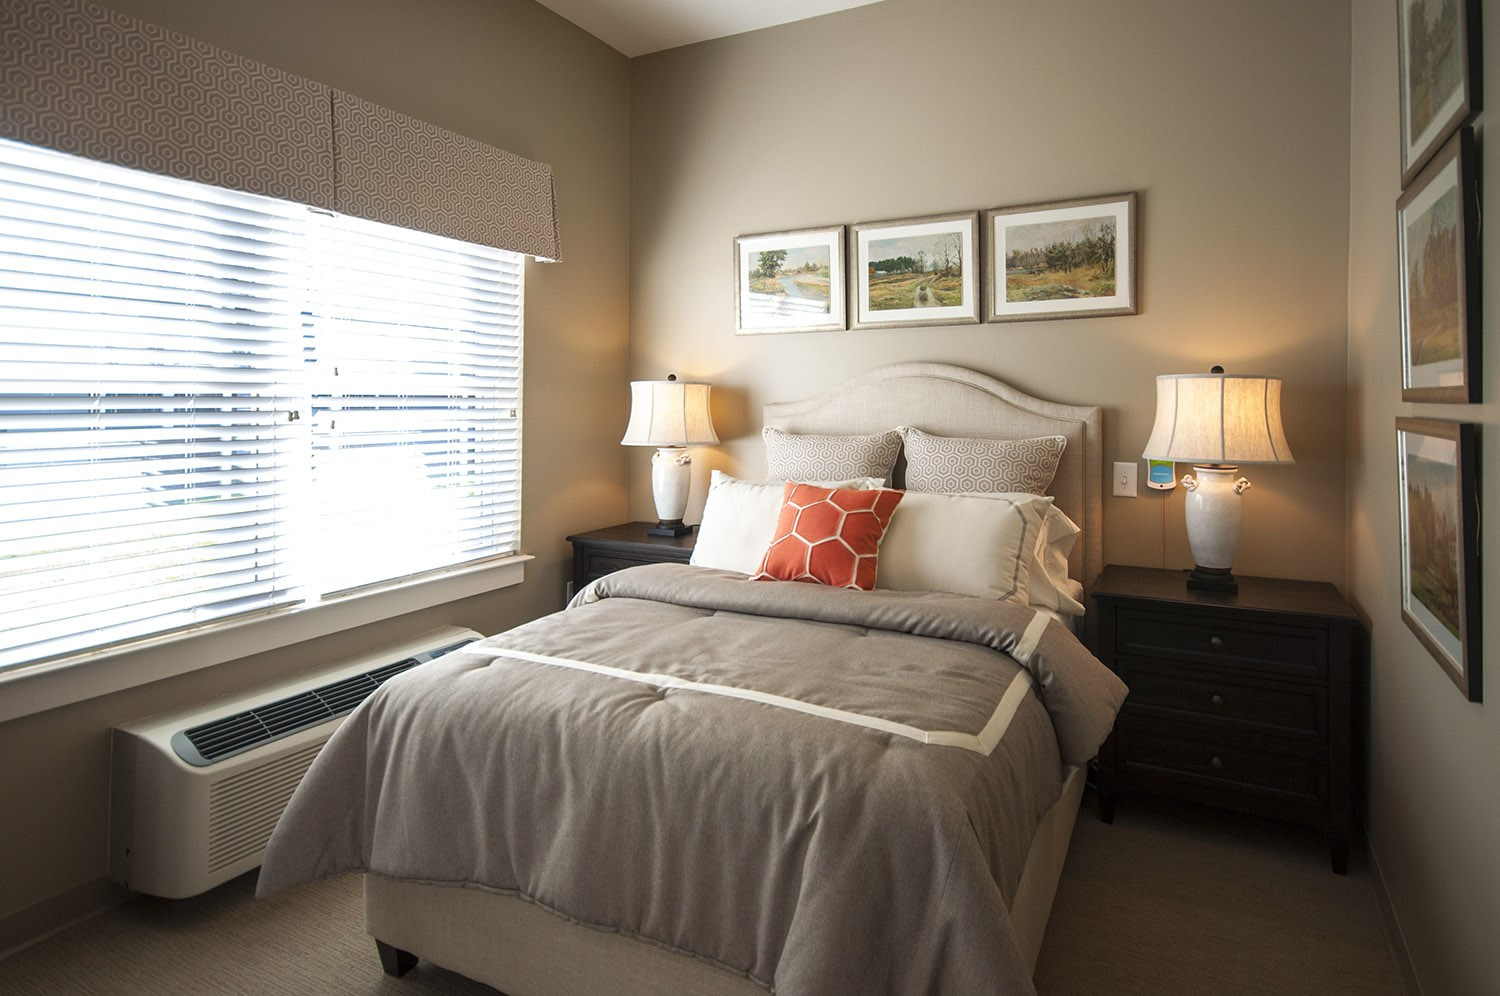 TAA-0586-Furnished-Suite.jpg